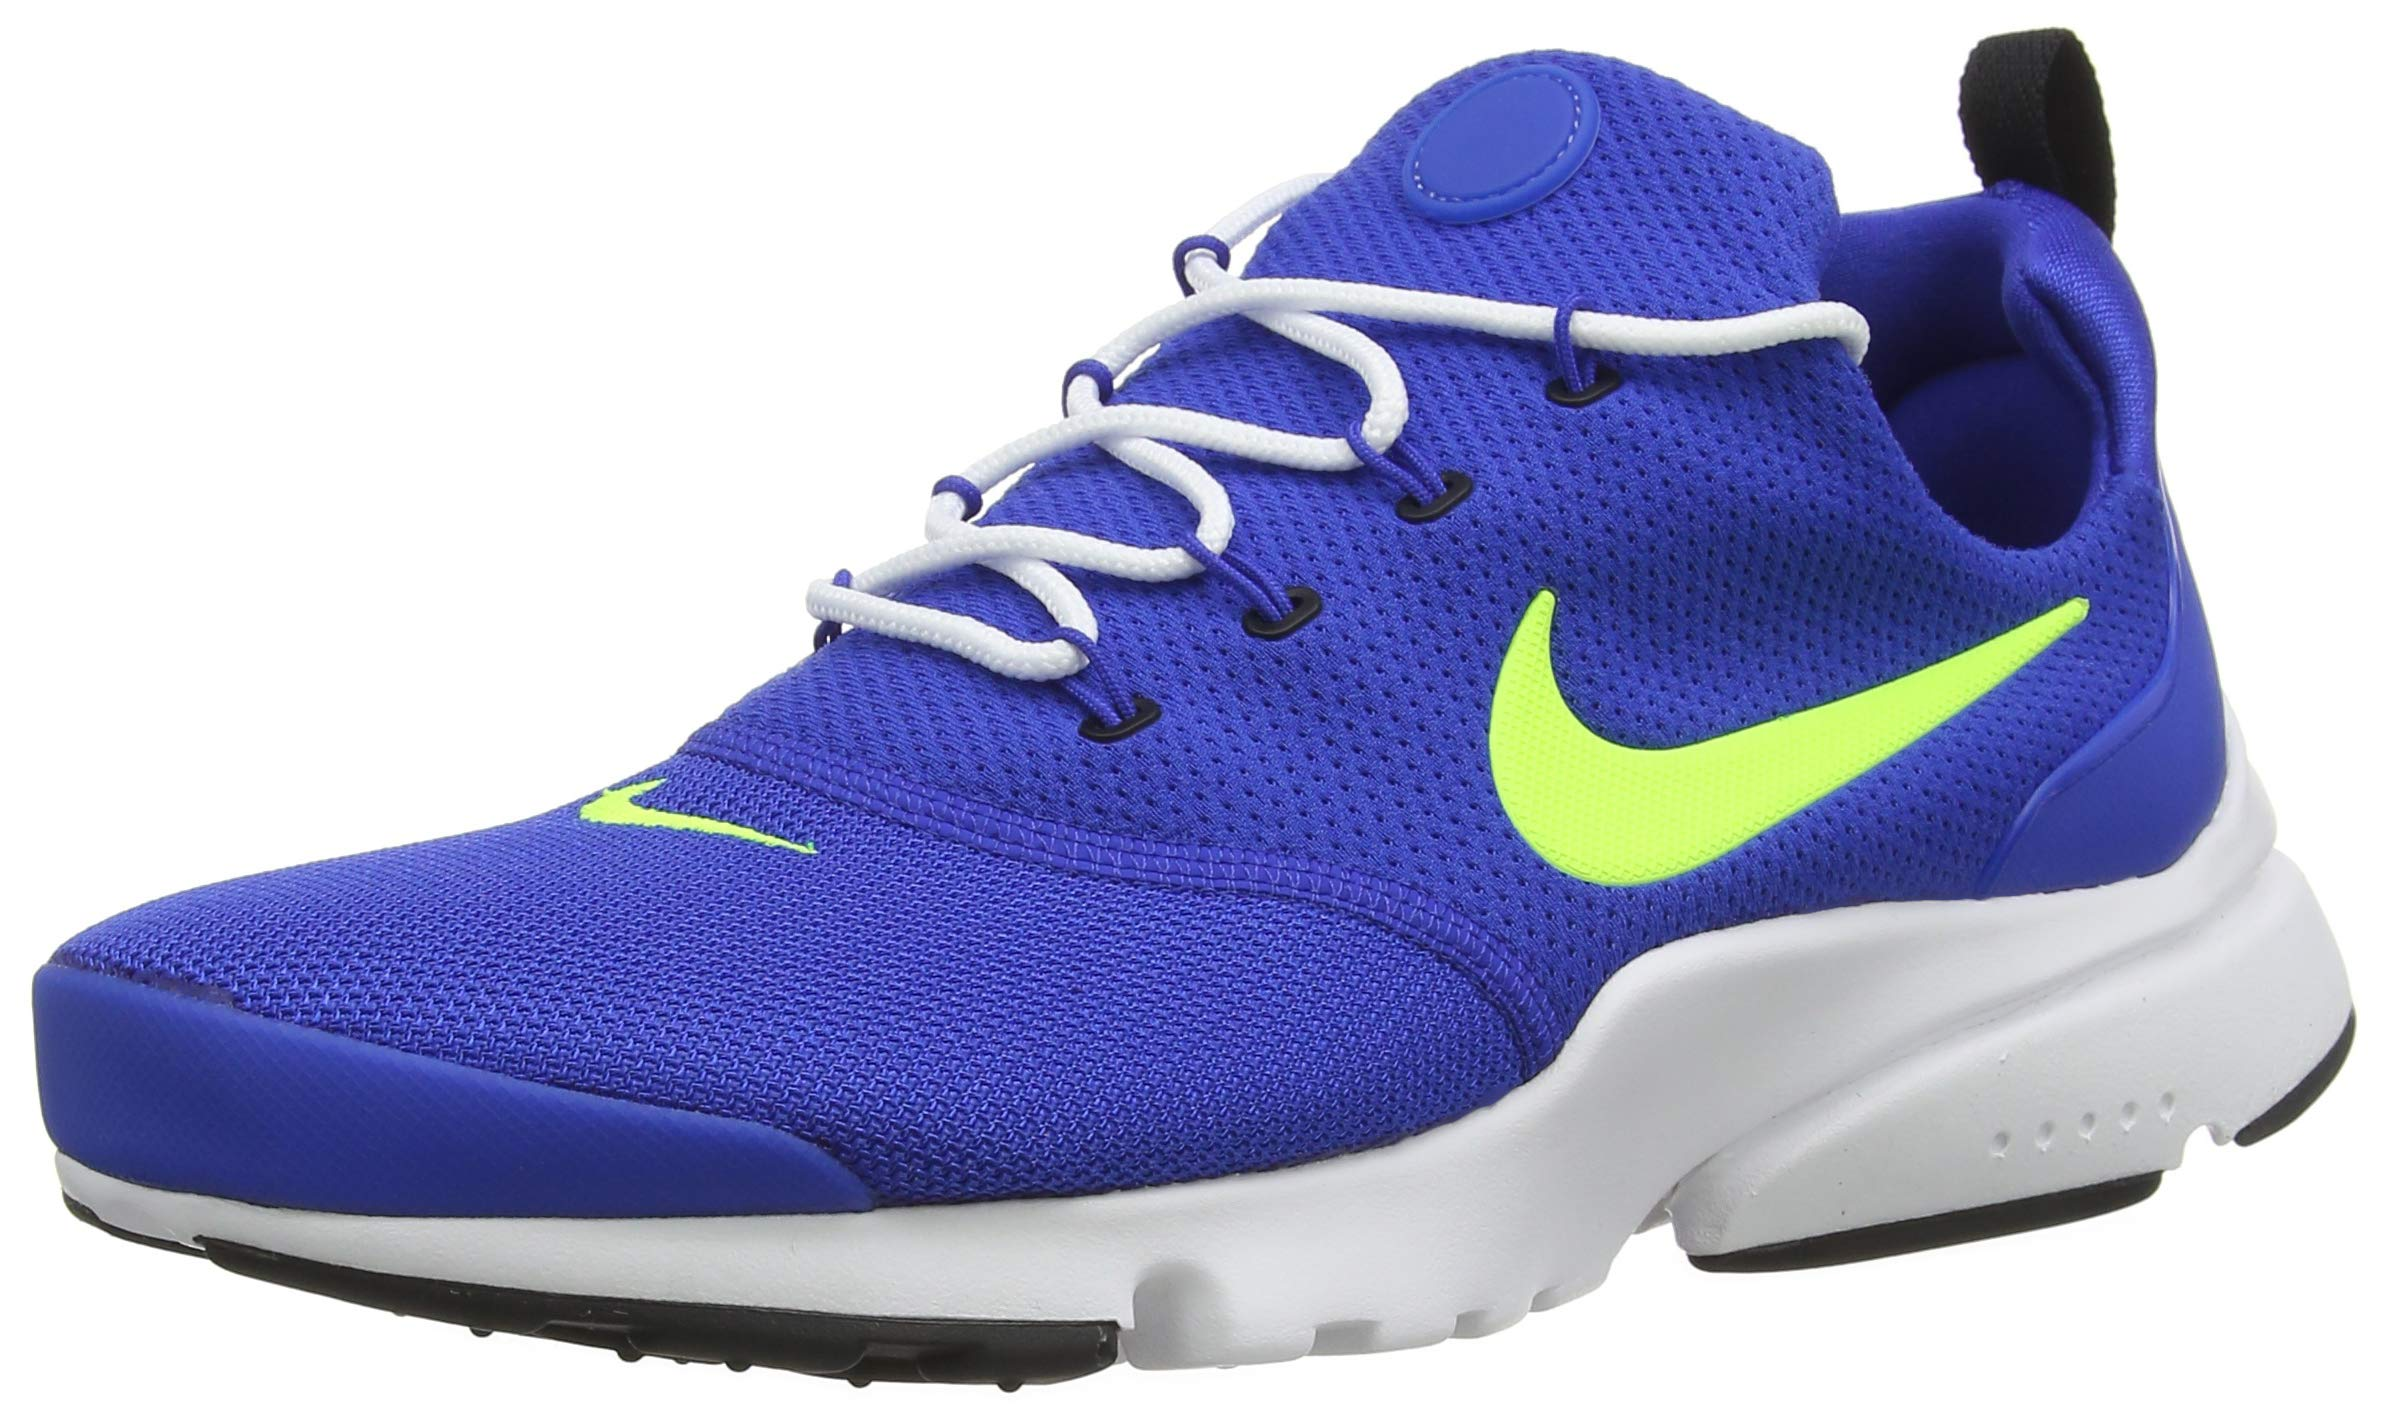 c884f1b9c4835 Galleon - Nike Presto Fly Mens Running Trainers 908019 Sneakers Shoes (UK 7  US 8 EU 41